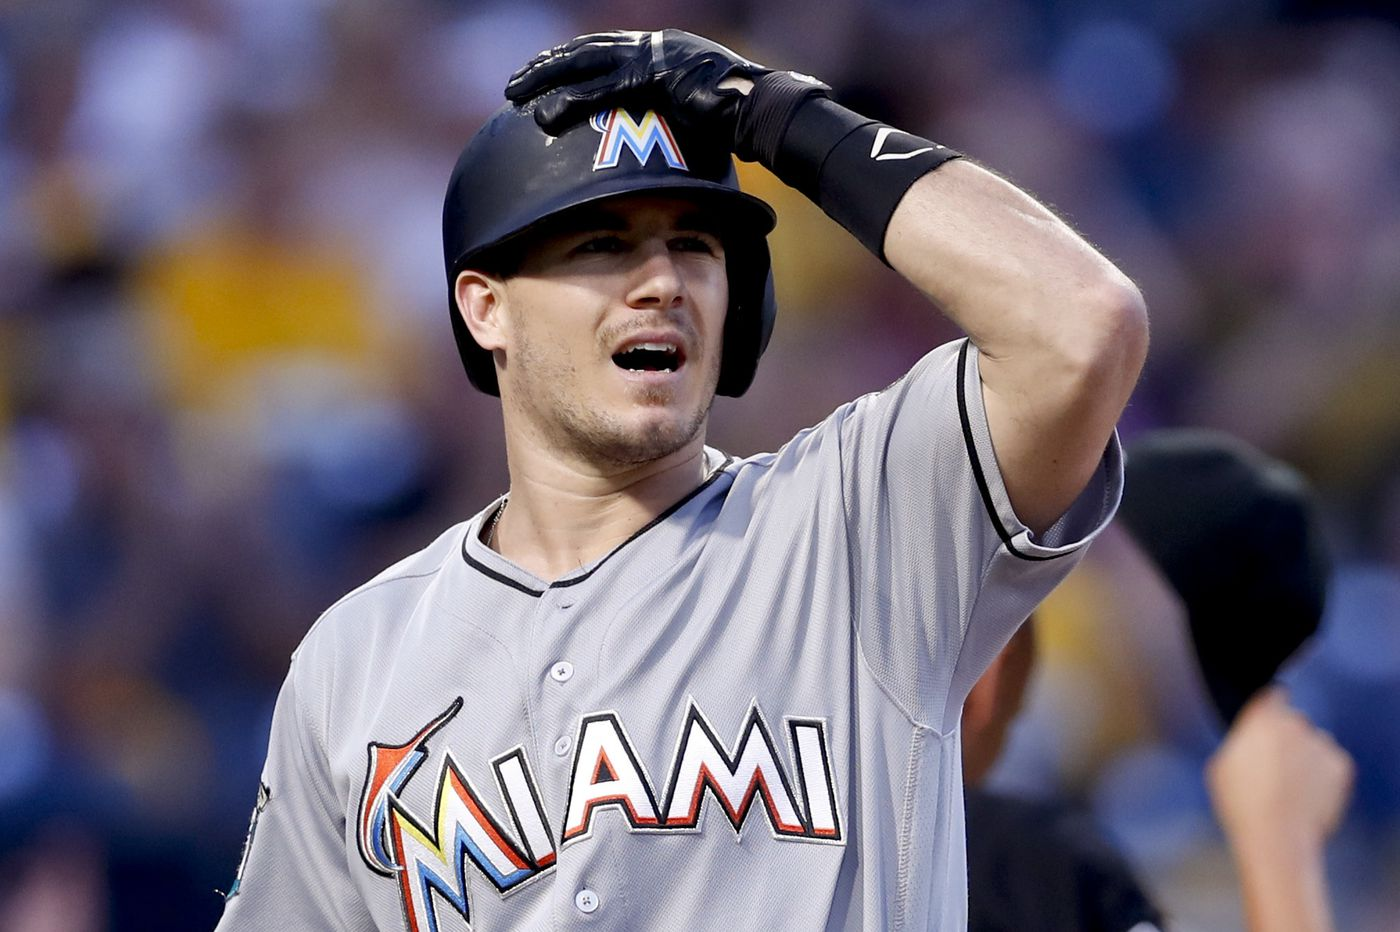 Marlins send catcher J.T. Realmuto to the Phillies